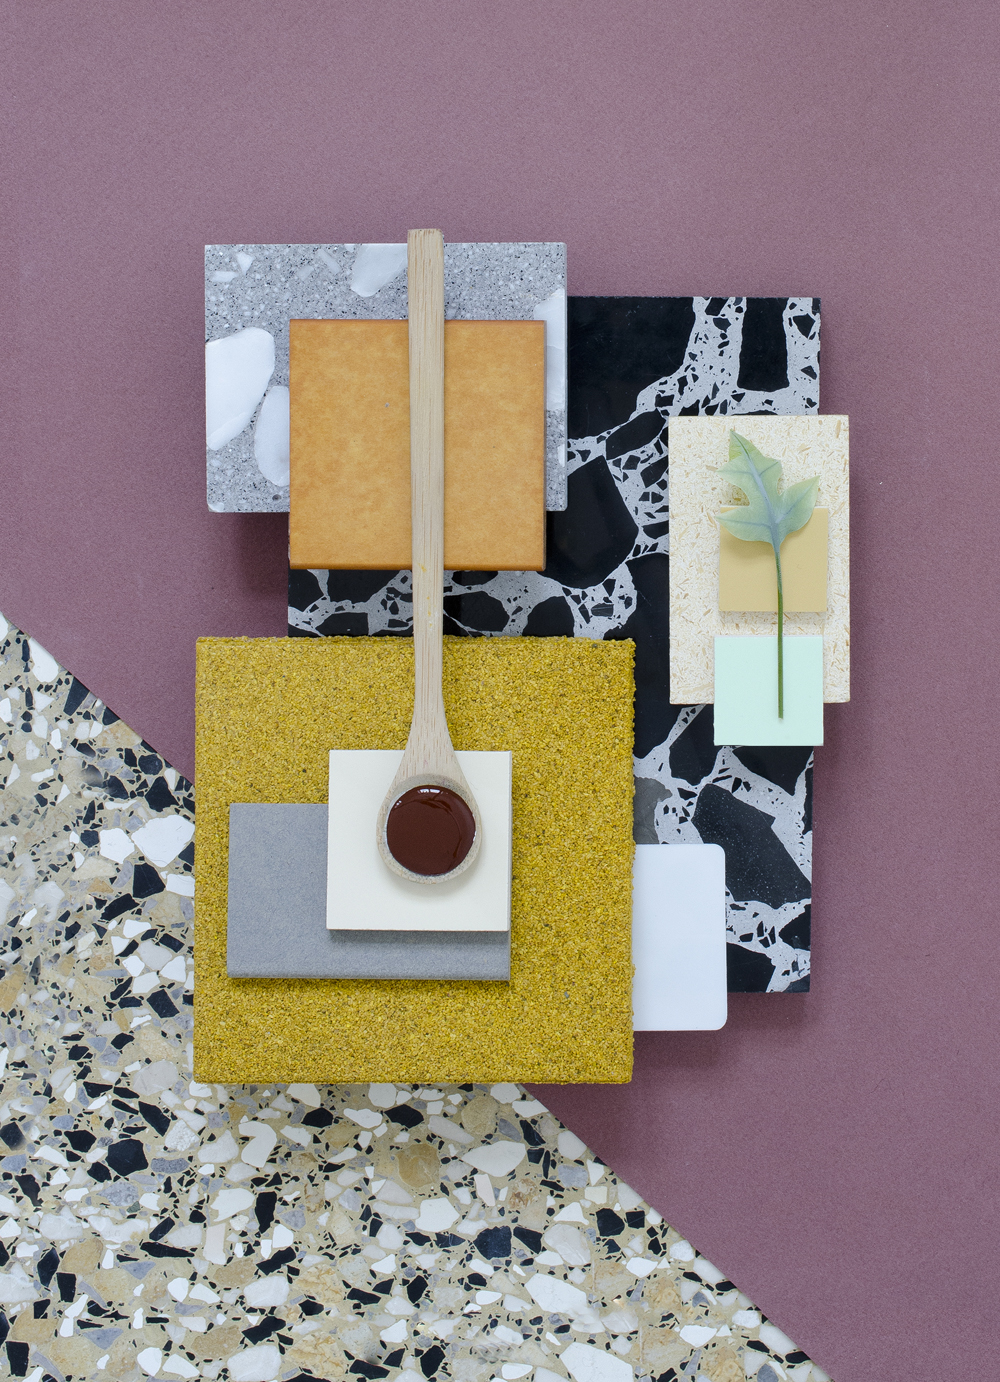 Studio David Thulstrup-moodboard-materials-5